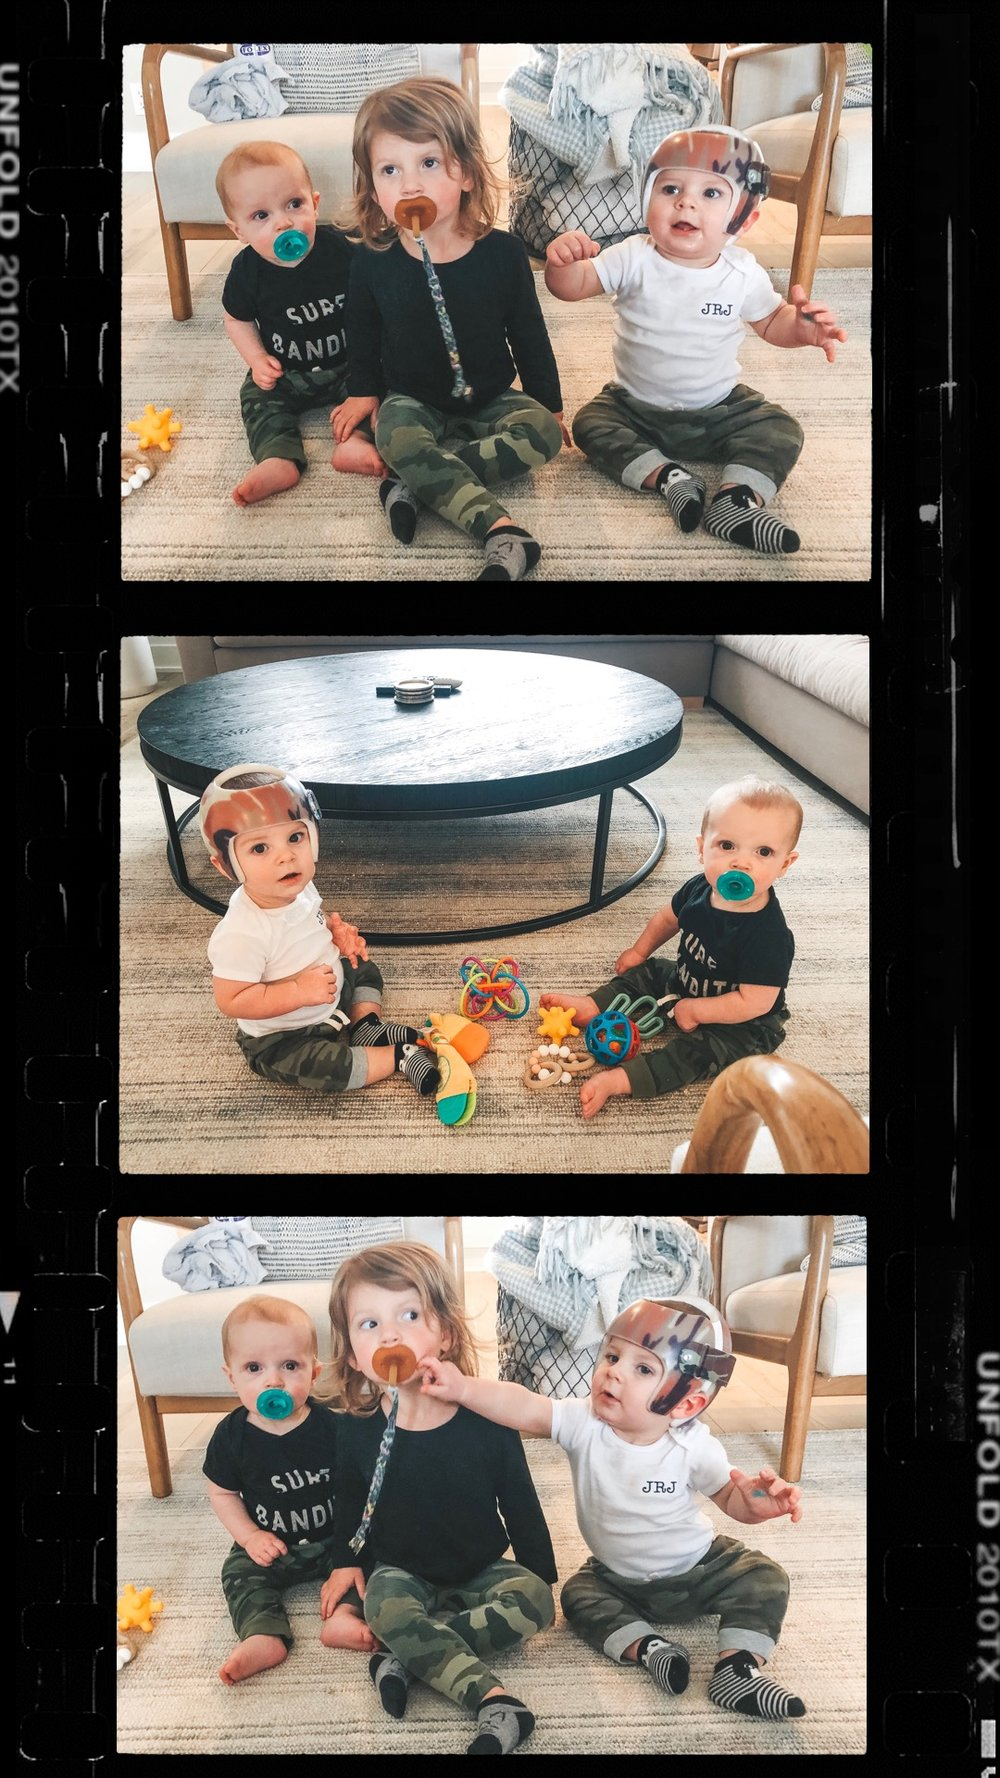 Jett Jones 10 month update.  Cousins in camo.